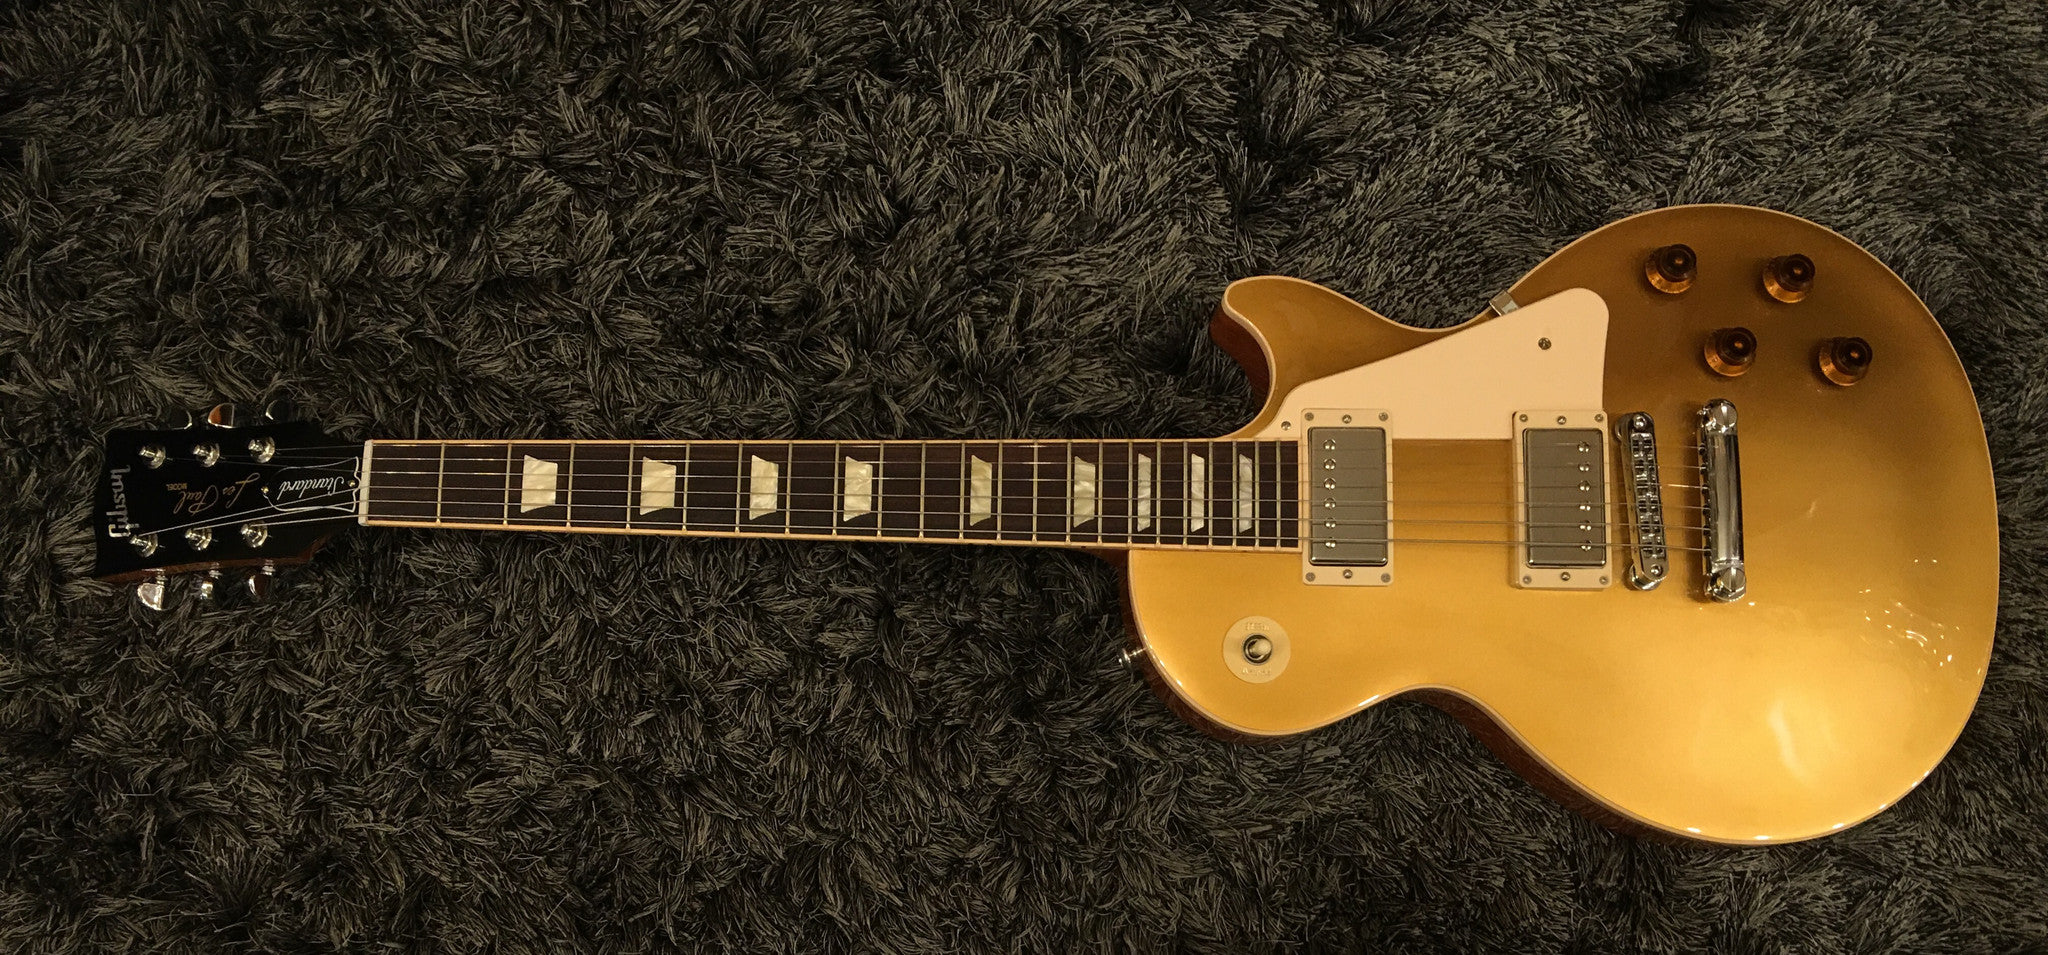 Gibson 2016 Les Paul Standard T Electric Guitar  Gold Top - HIENDGUITAR   Gibson gibson2016